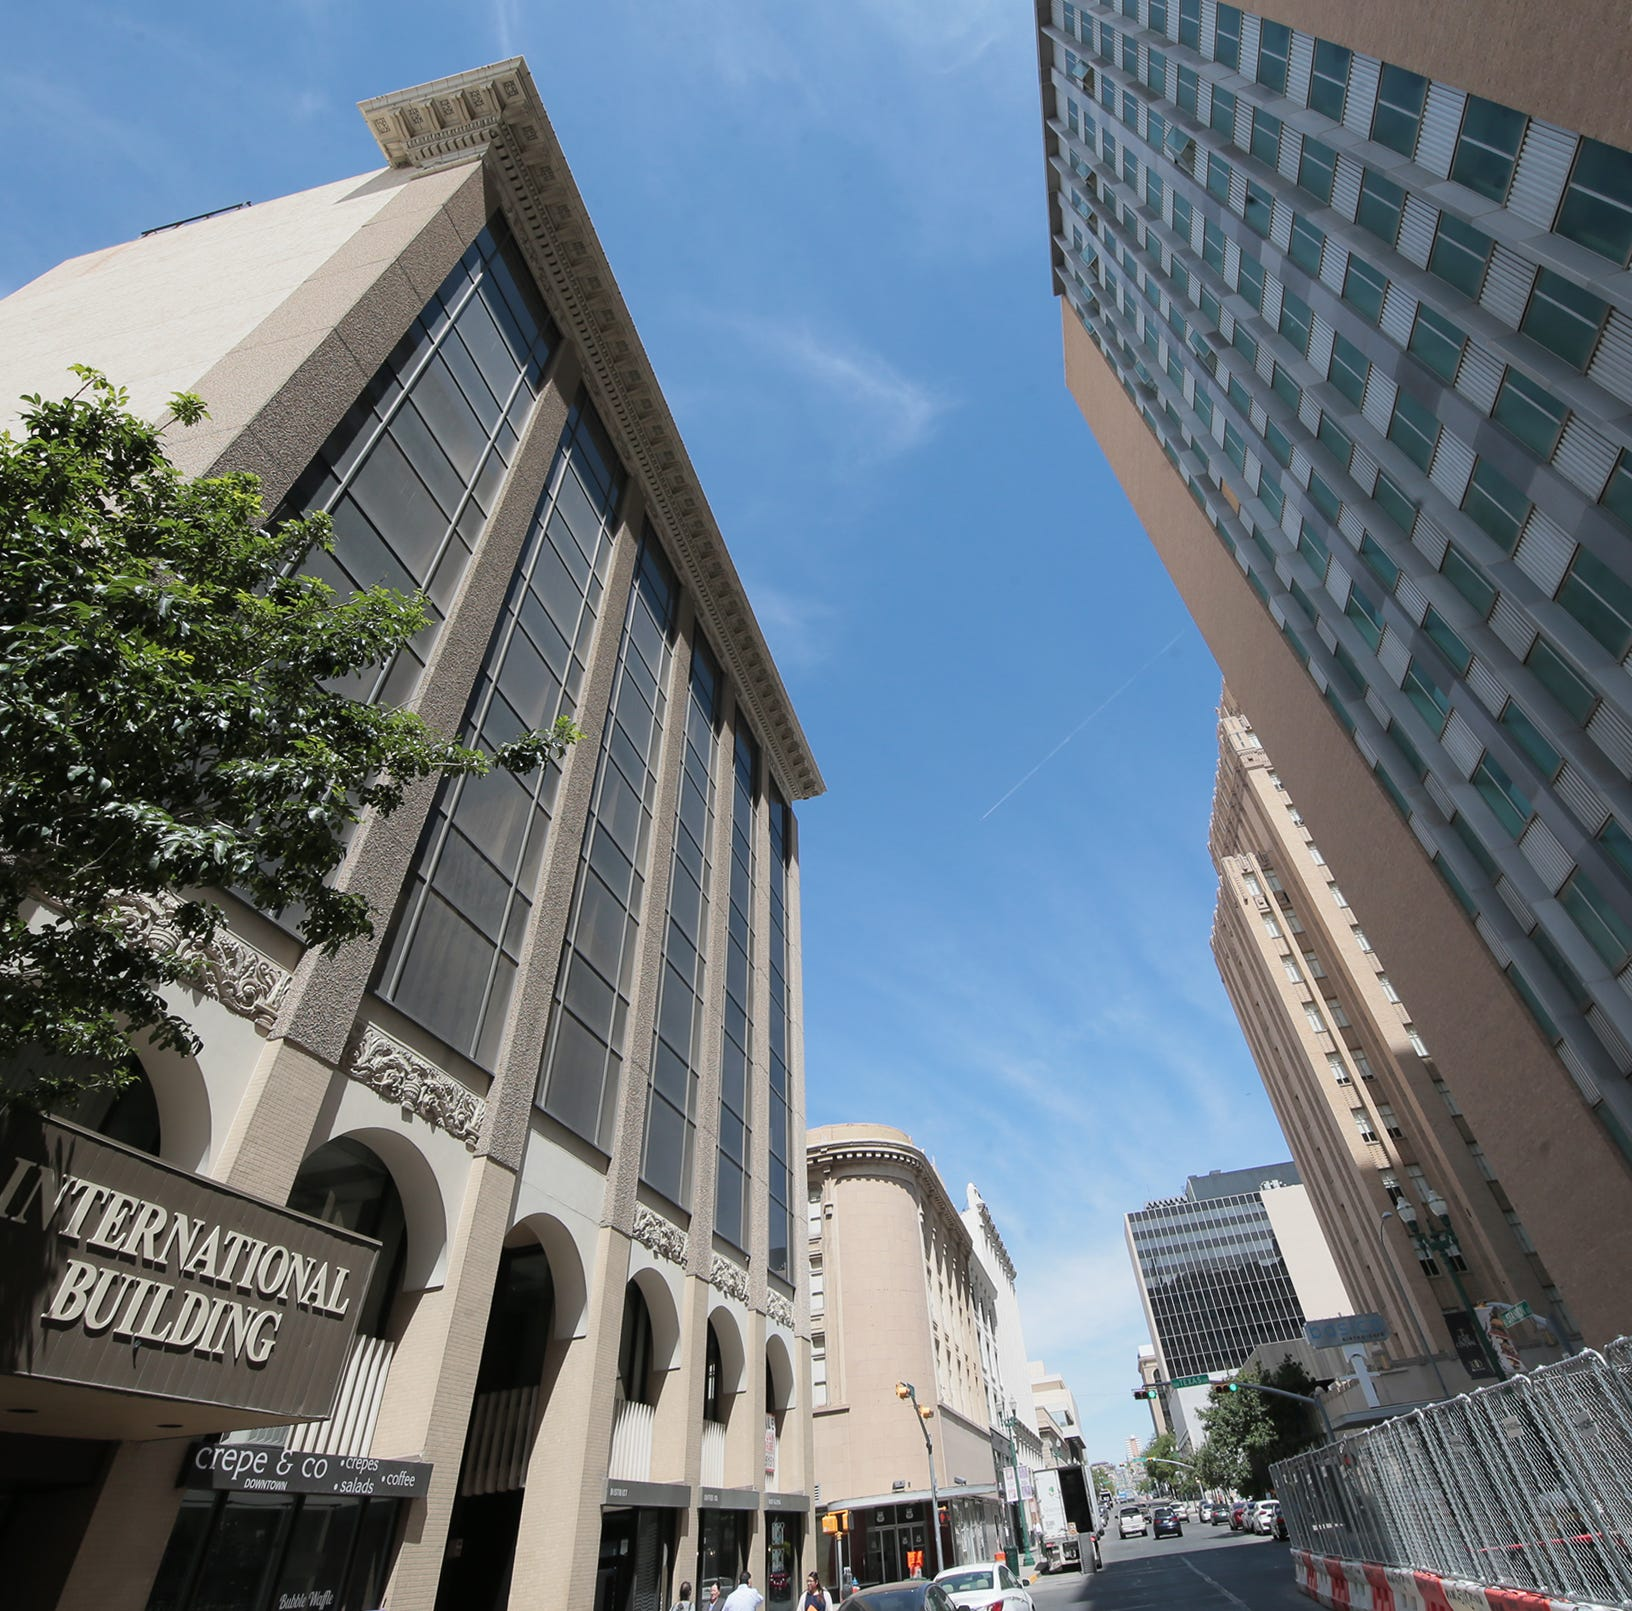 A 10th hotel is planned for Downtown El Paso and hoteliers think it's getting crowded